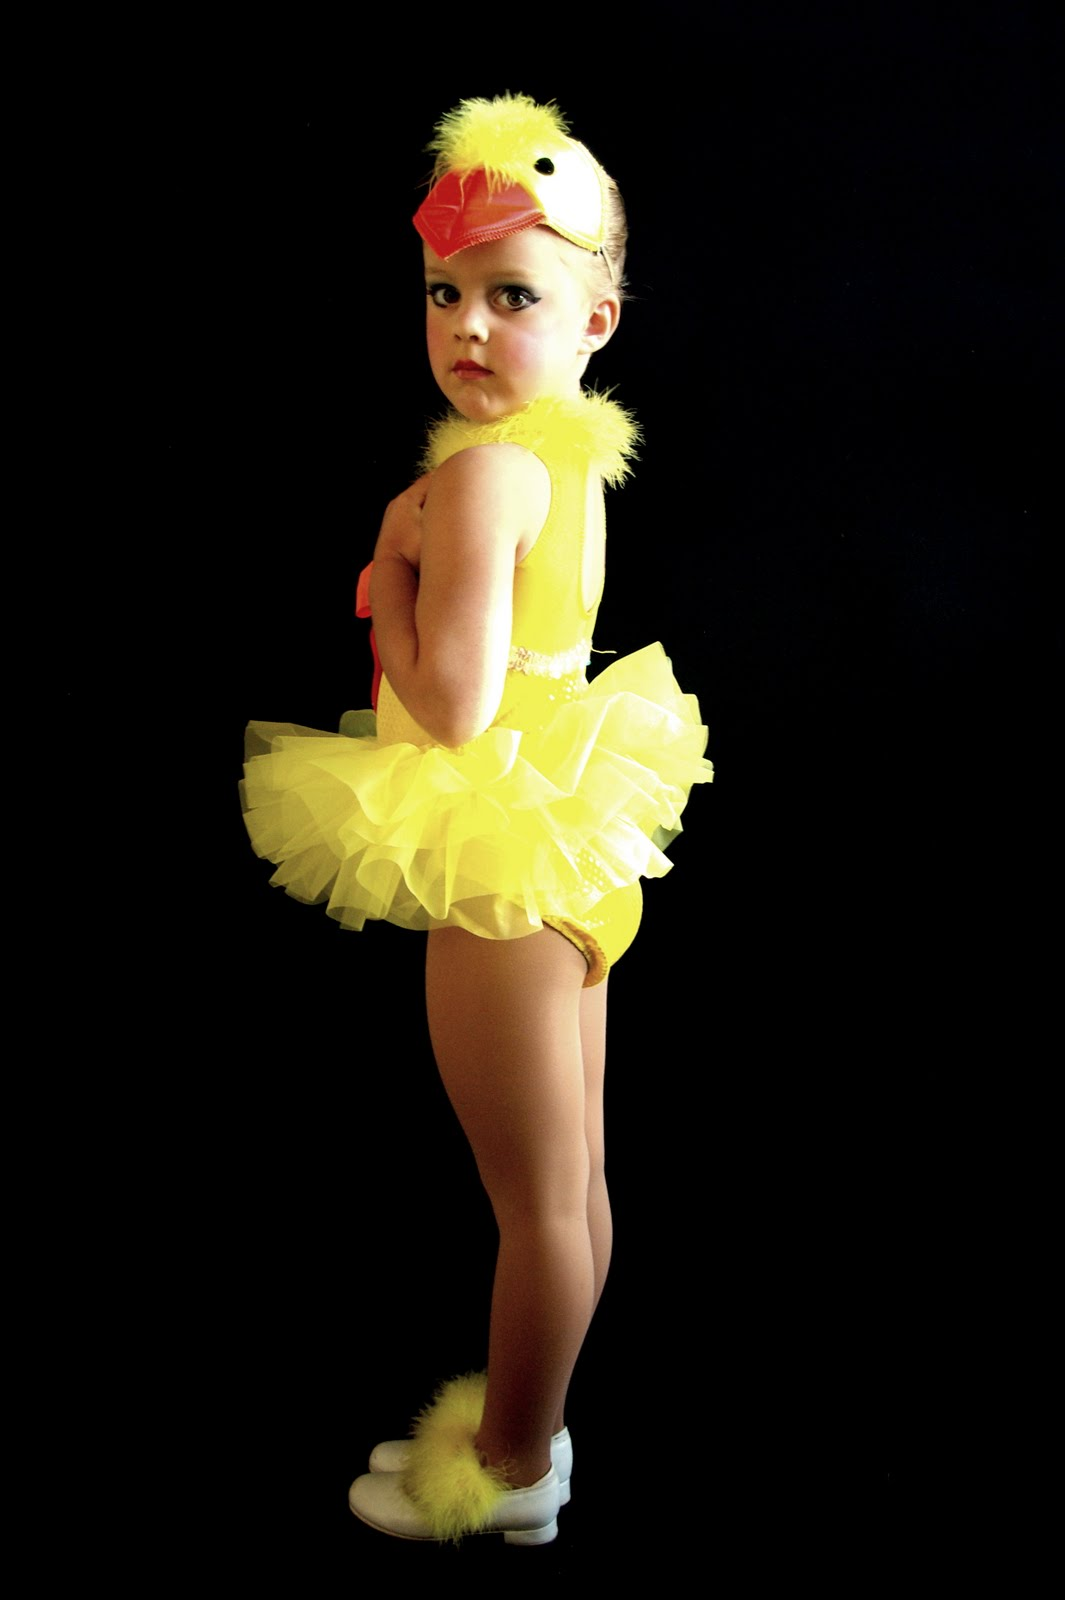 The Shanks Family First Dance Recital